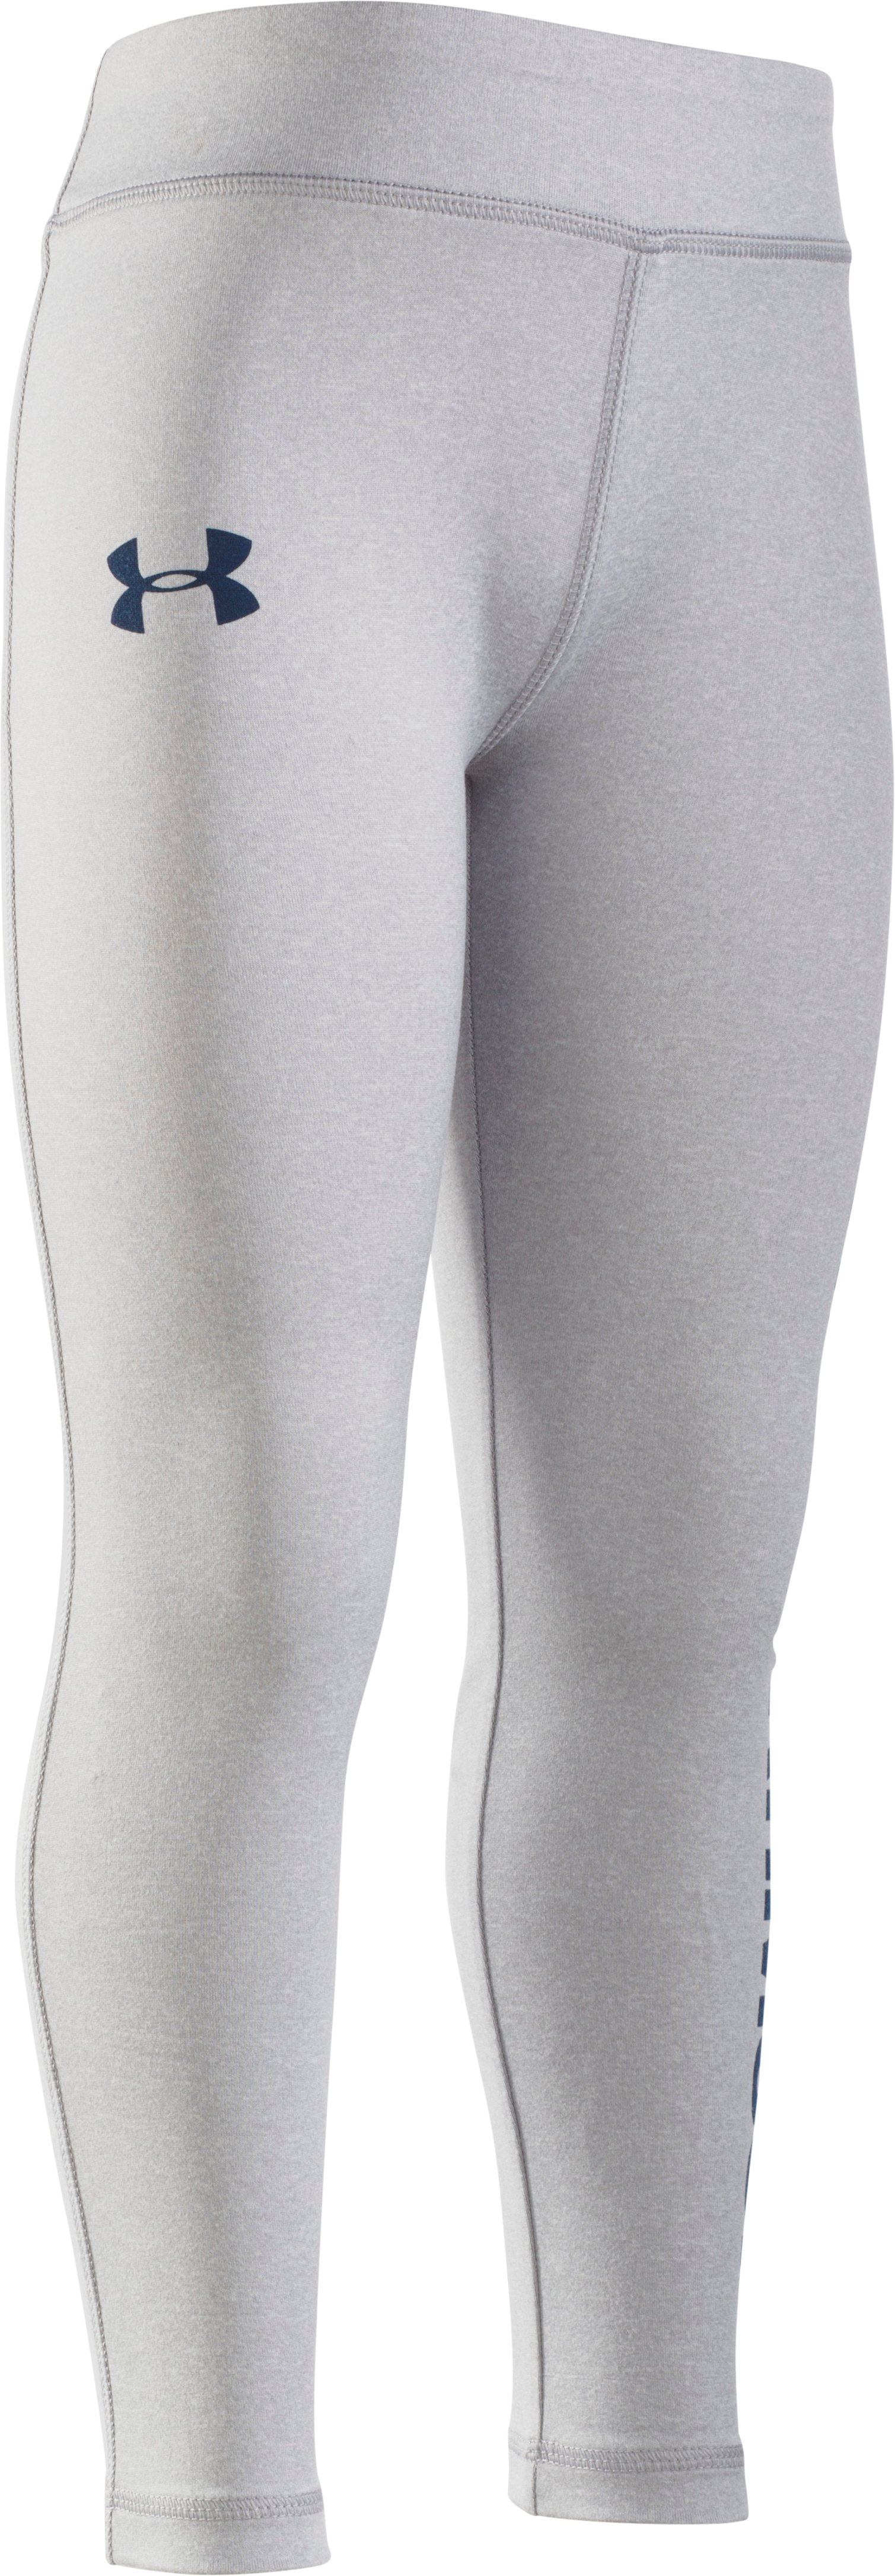 Girls' Pre-School UA Favorite Graphic Leggings, AIR FORCE GRAY HEATHER, Laydown